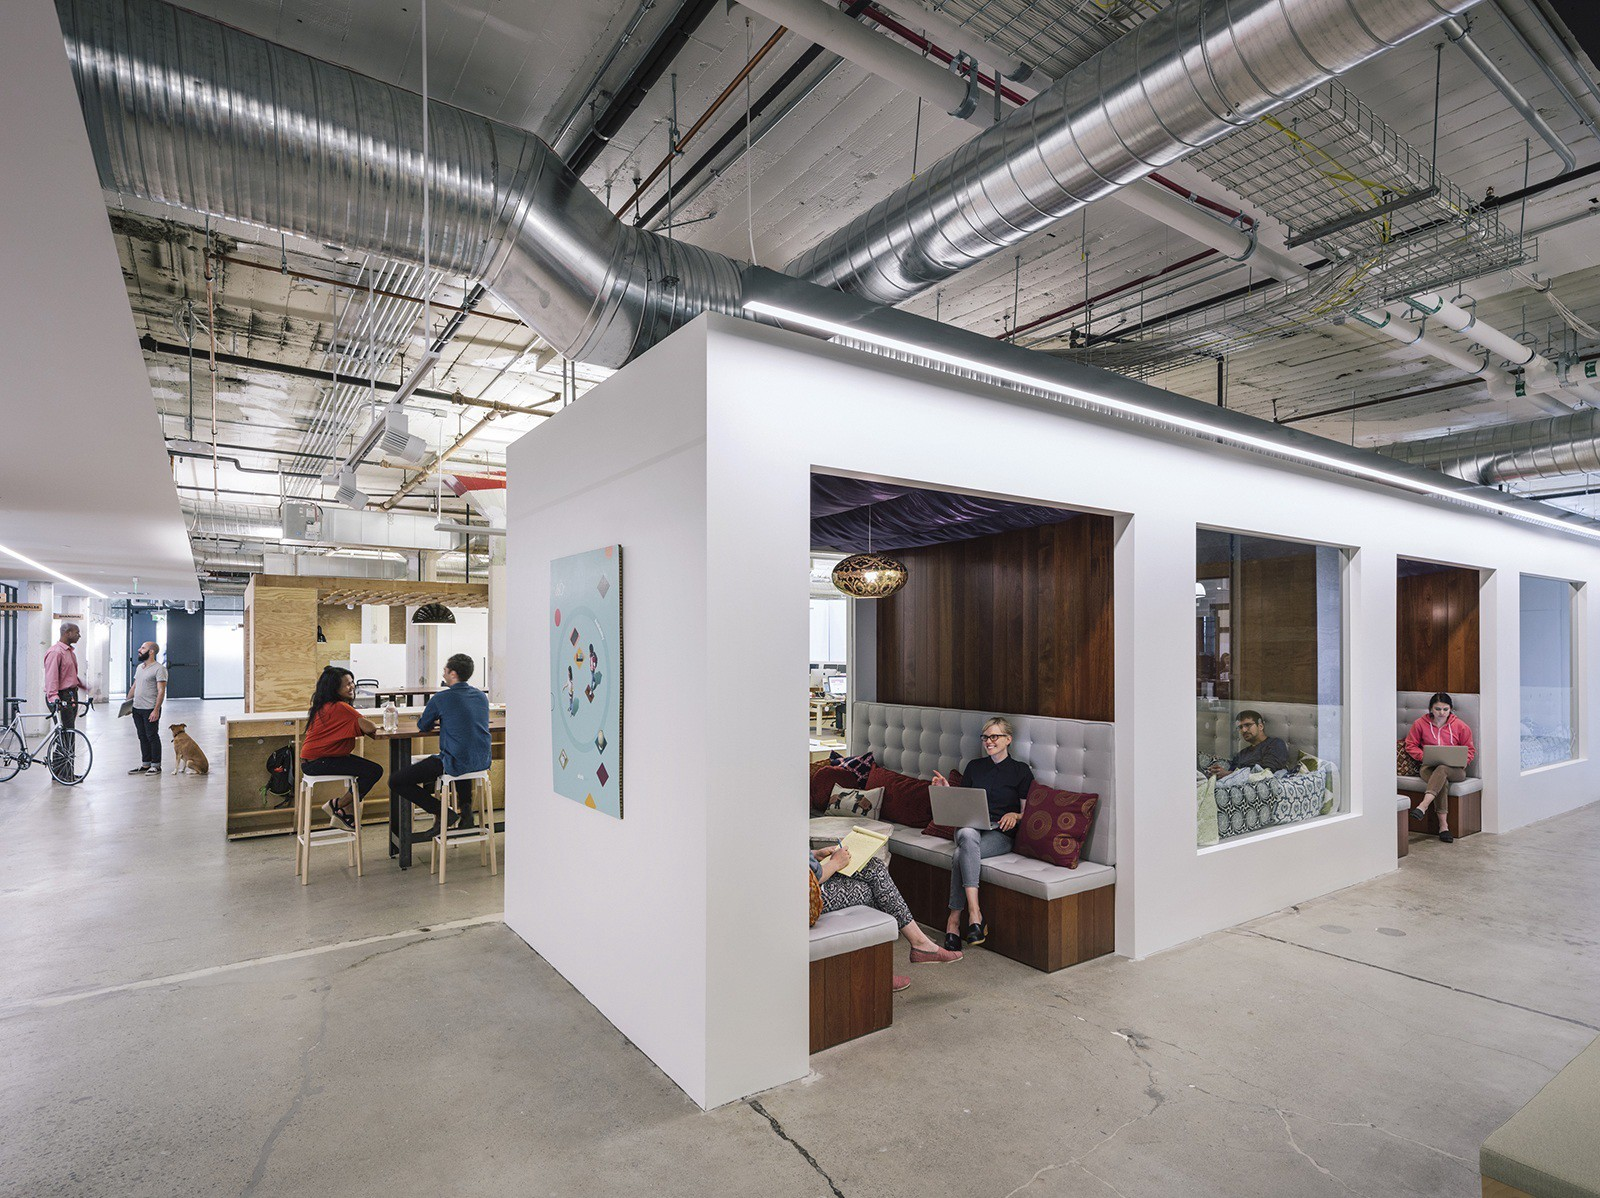 Interiors of an Airbnb office featuring their co-working spaces and themed meeting rooms